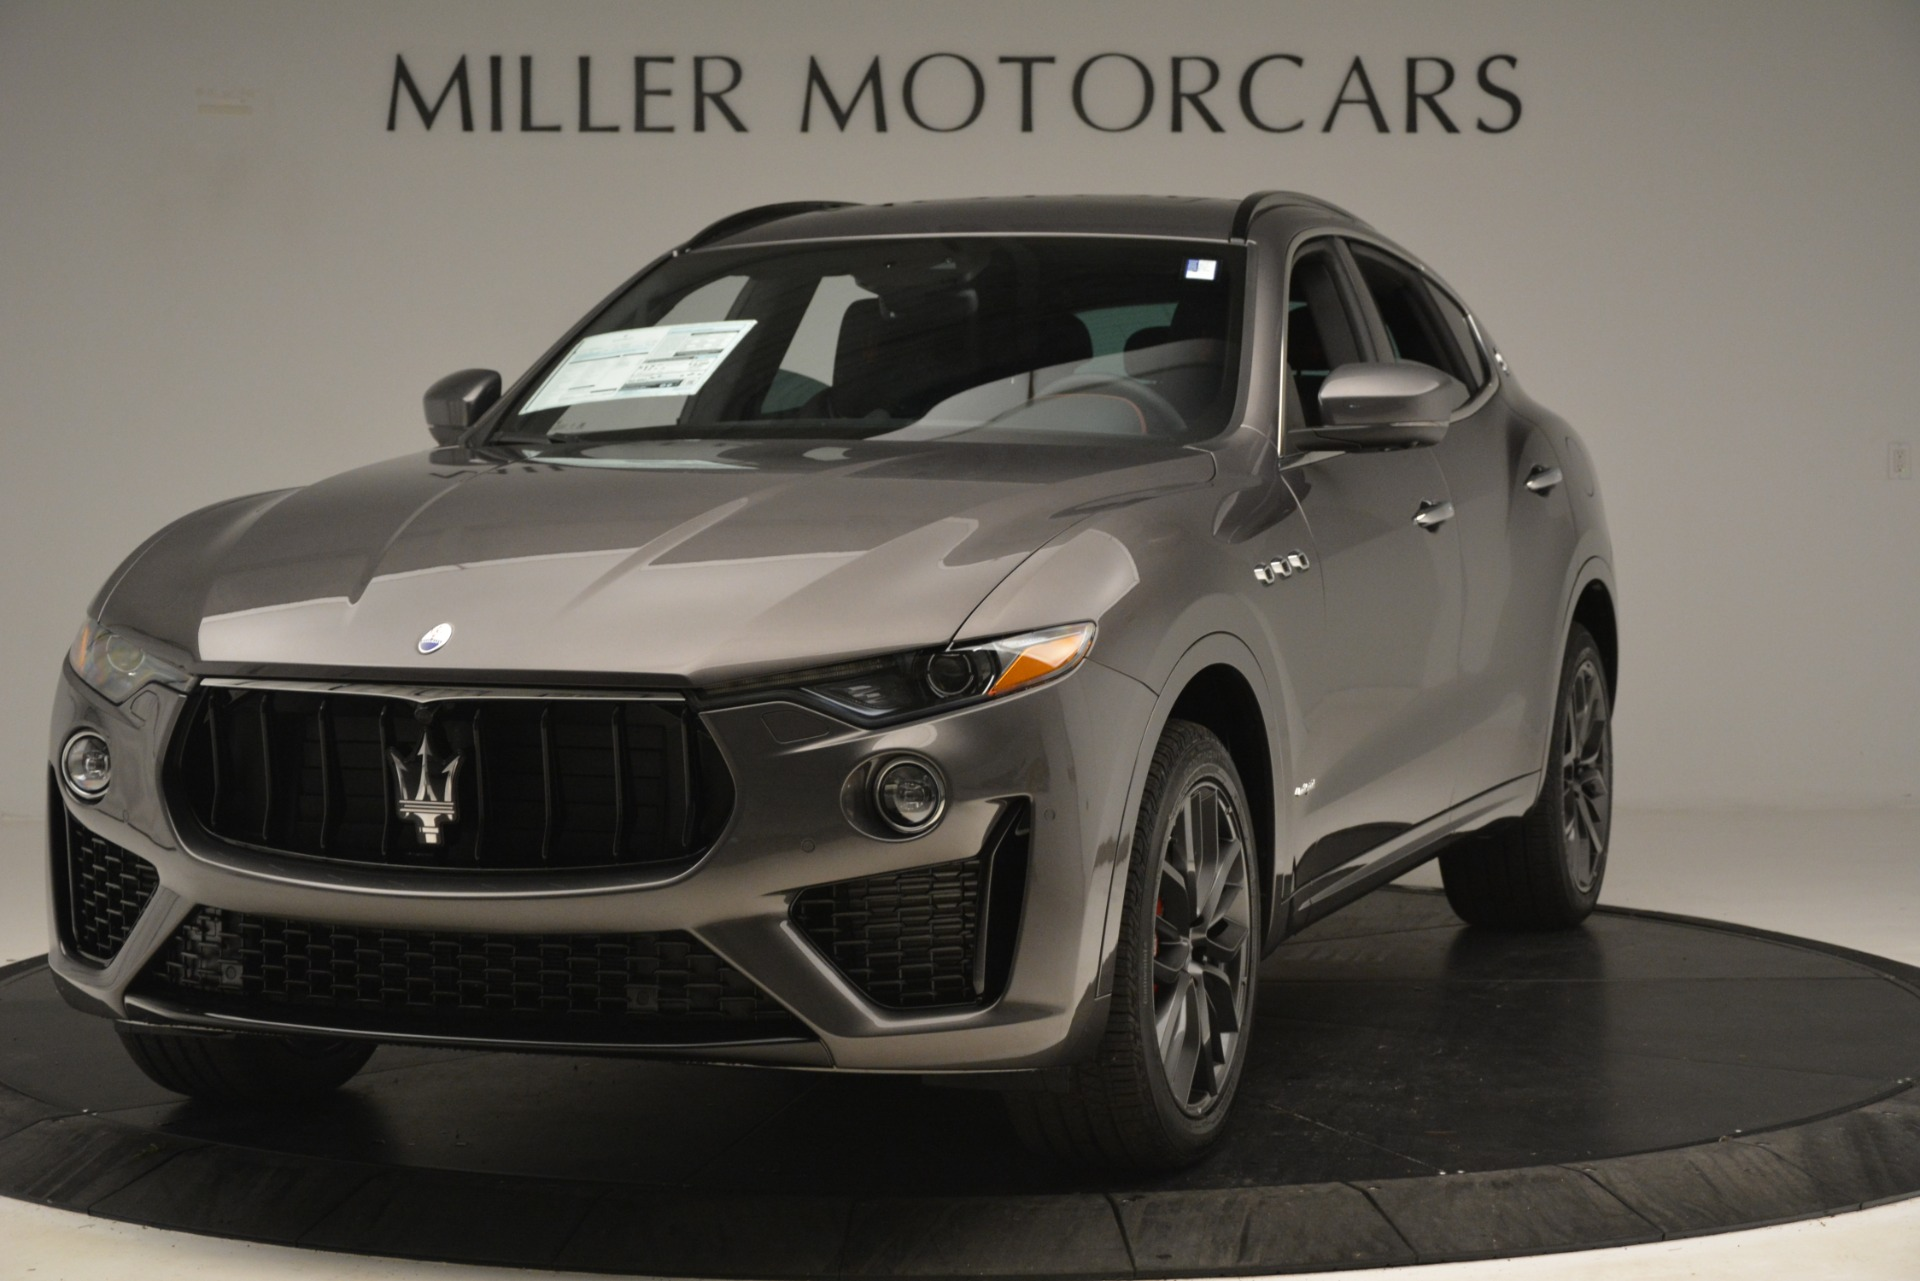 New 2019 Maserati Levante S Q4 GranSport for sale $103,440 at Rolls-Royce Motor Cars Greenwich in Greenwich CT 06830 1